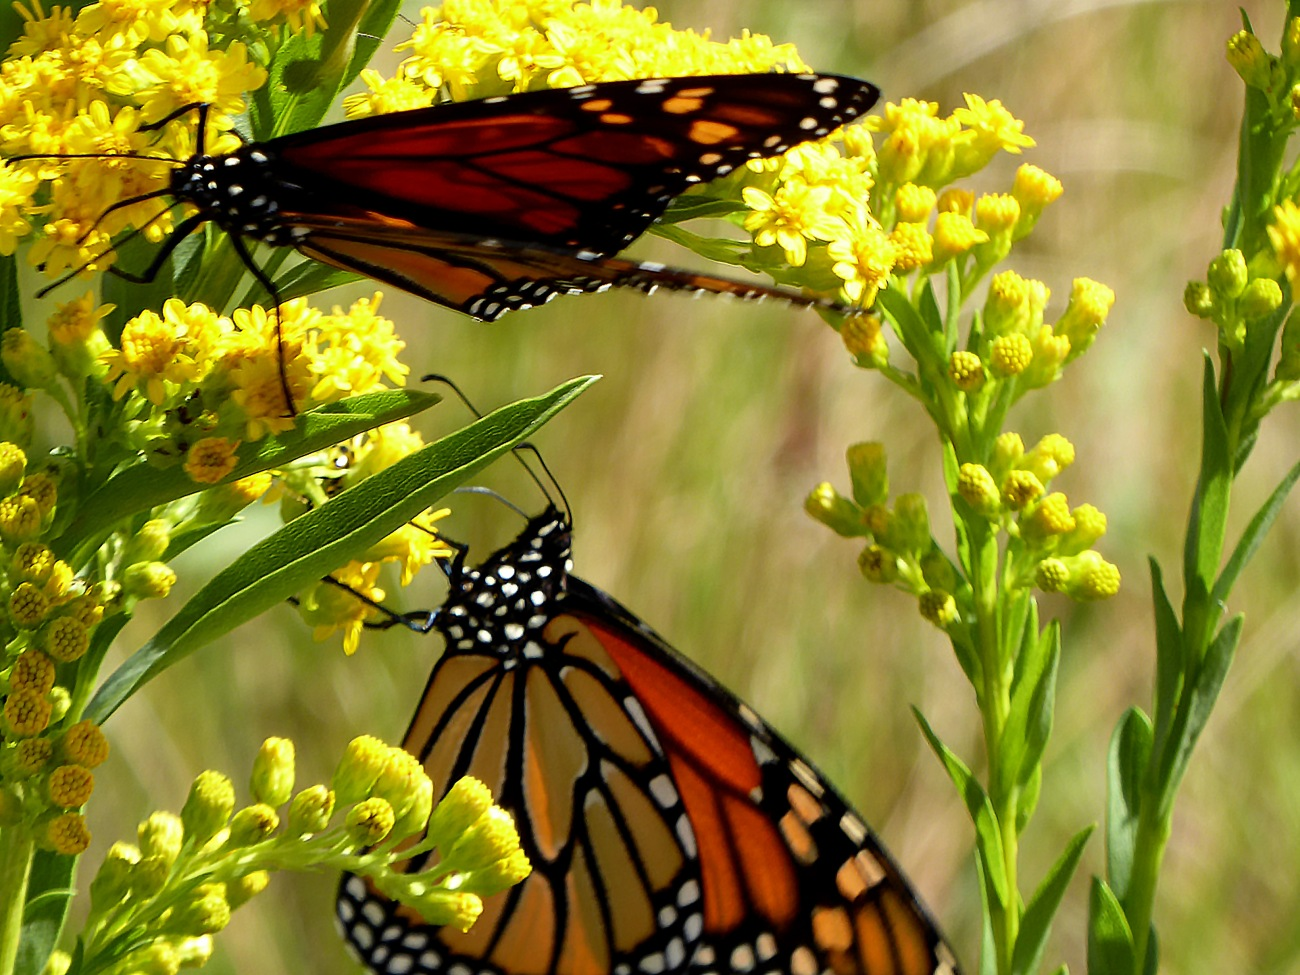 20170930_115612_Monarch butterflies holding on for dear life